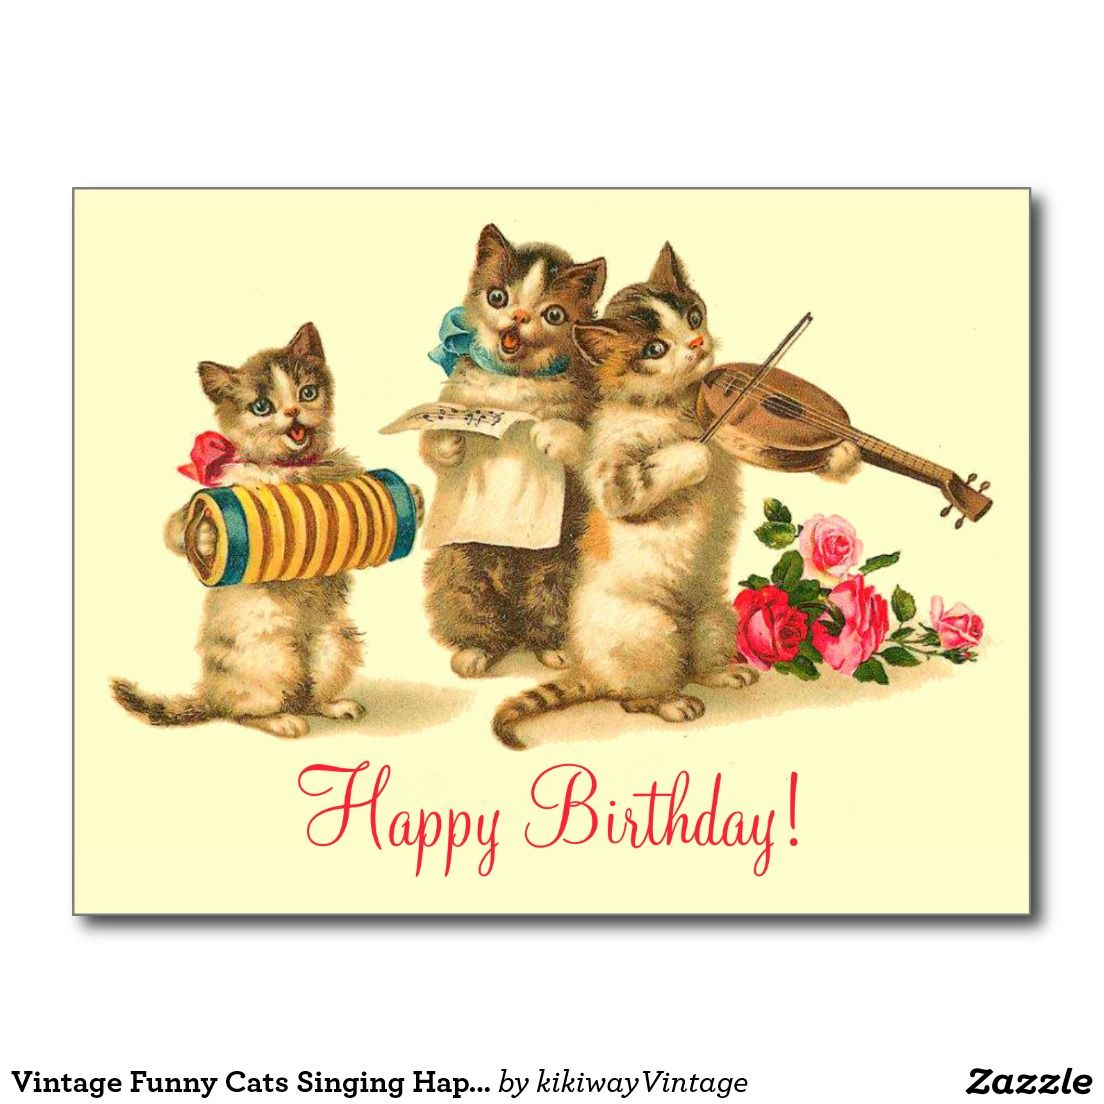 Vintage Funny Cats Singing Happy Birthday Postcard Zazzle Com Birthday Postcards Vintage Postcards Vintage Cat